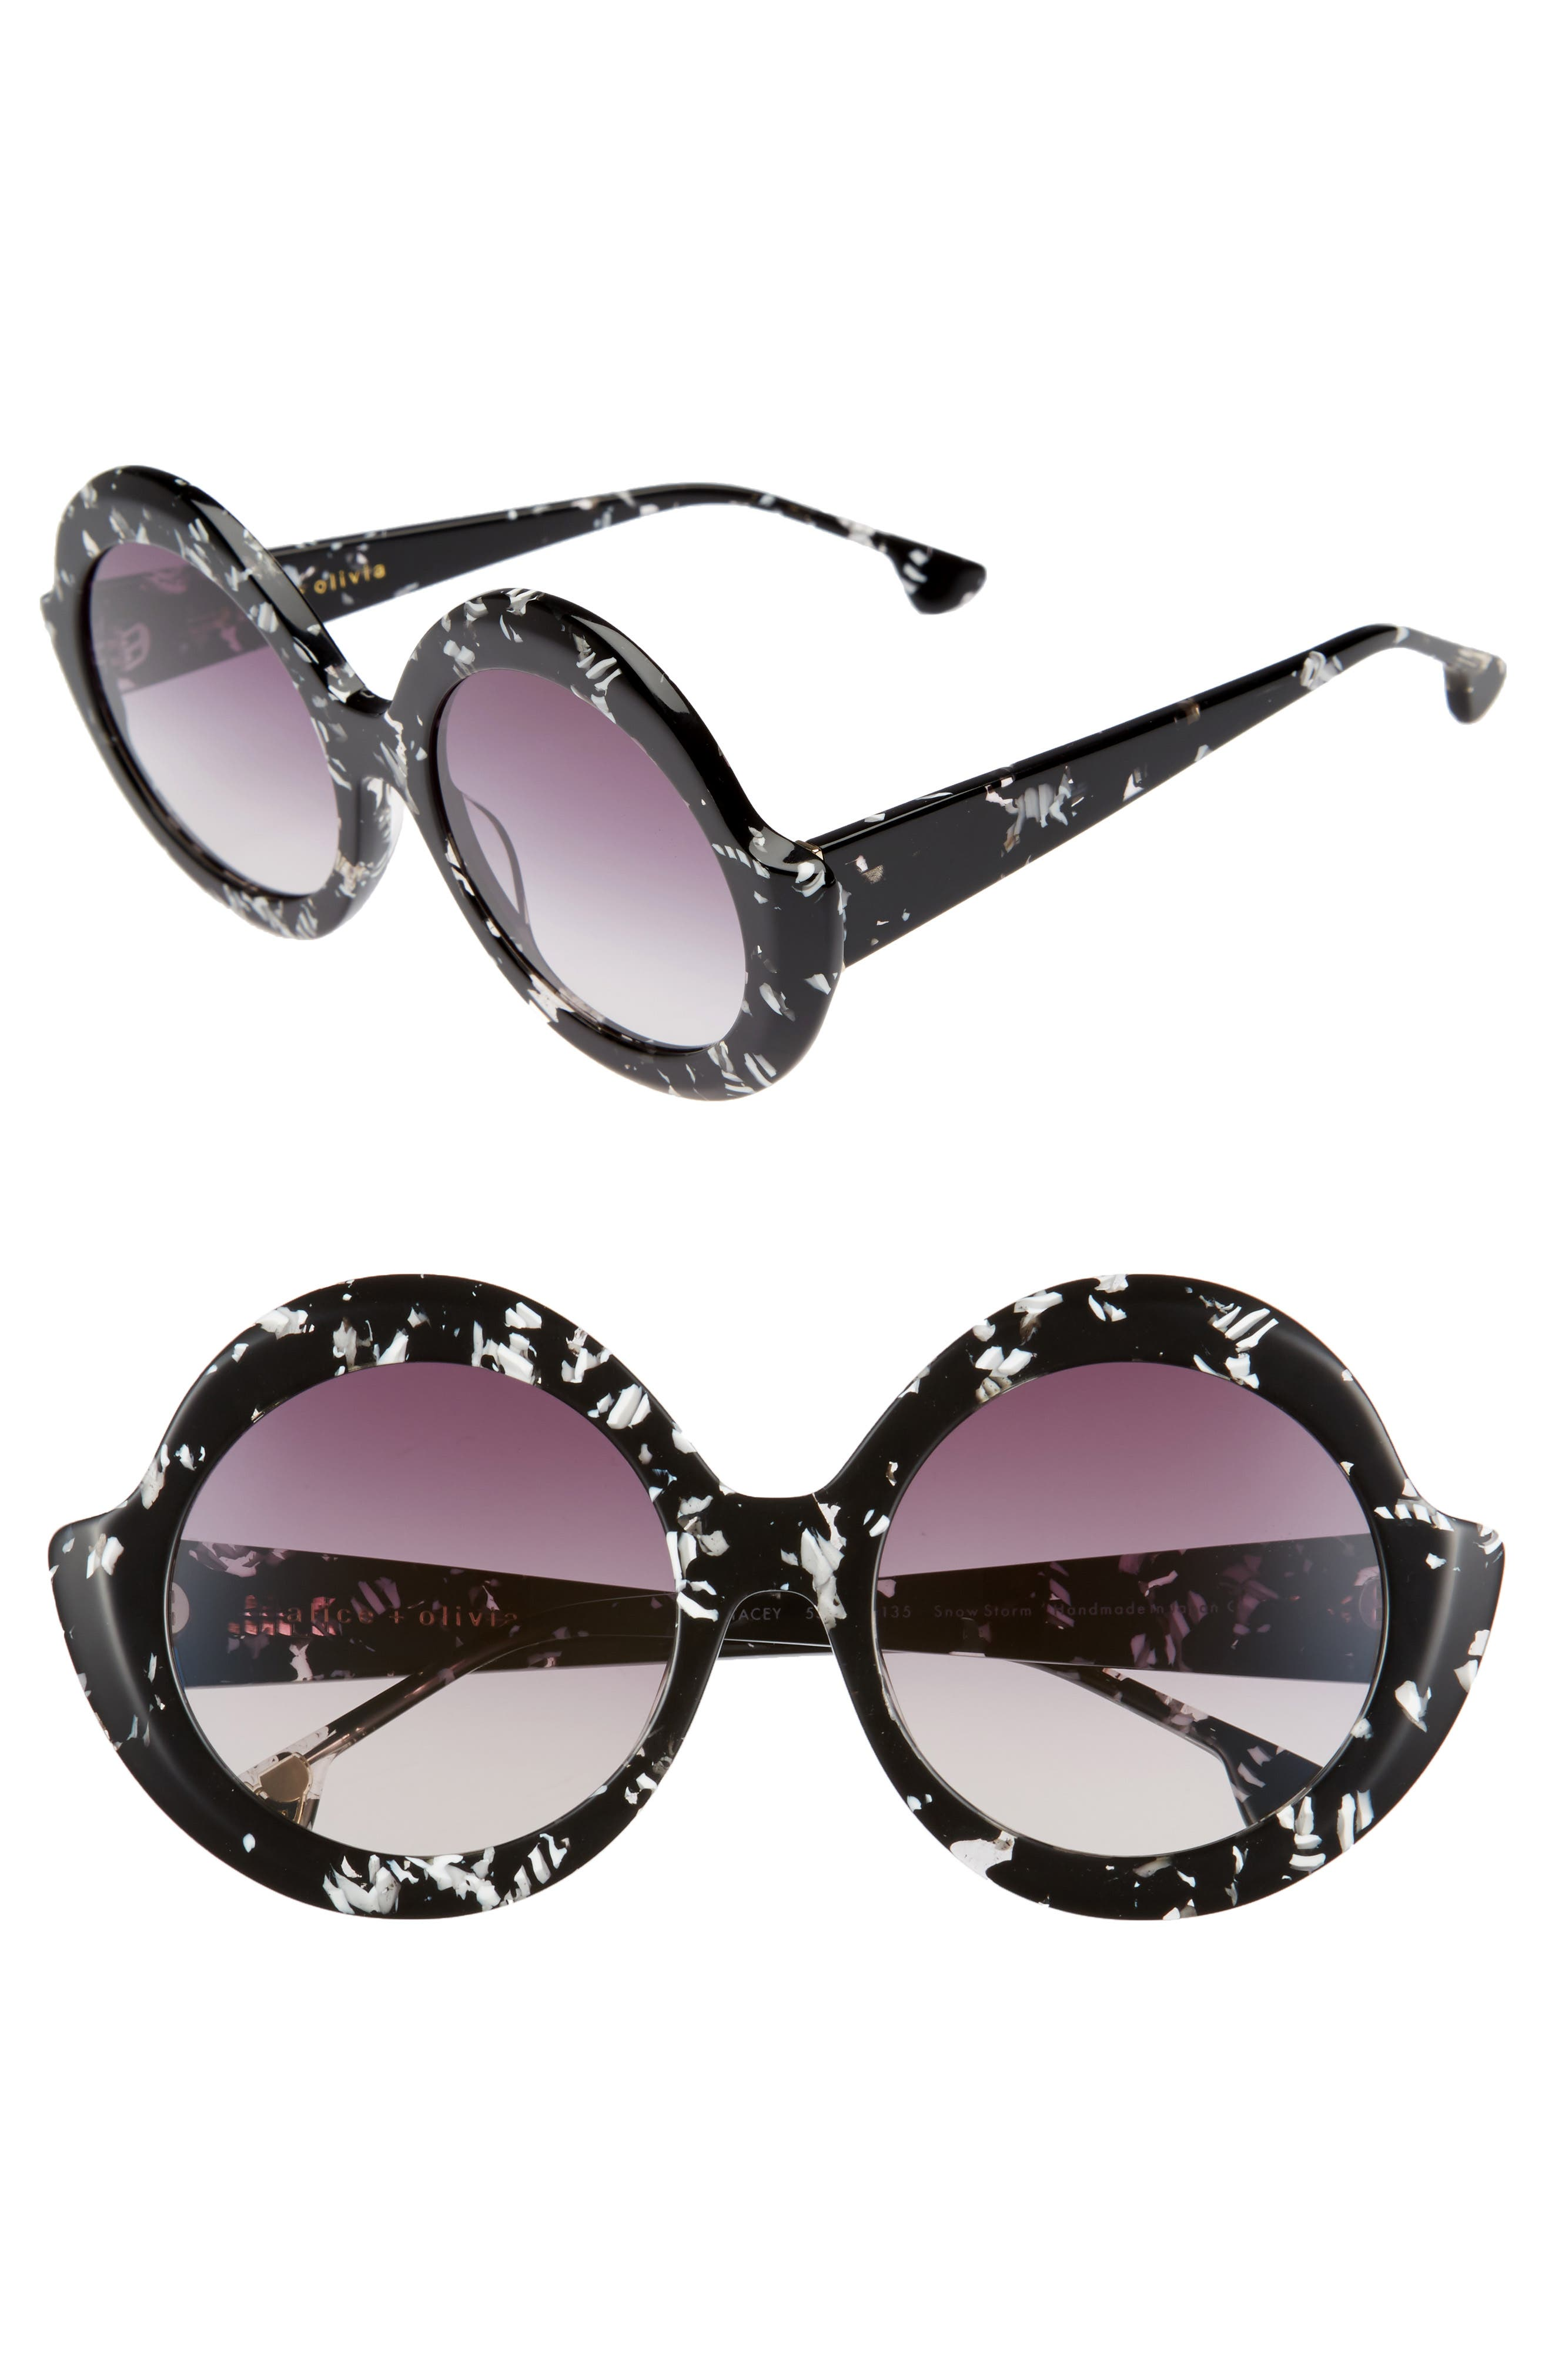 Main Image - Alice + Olivia Stacey 56mm Round Gradient Lens Sunglasses